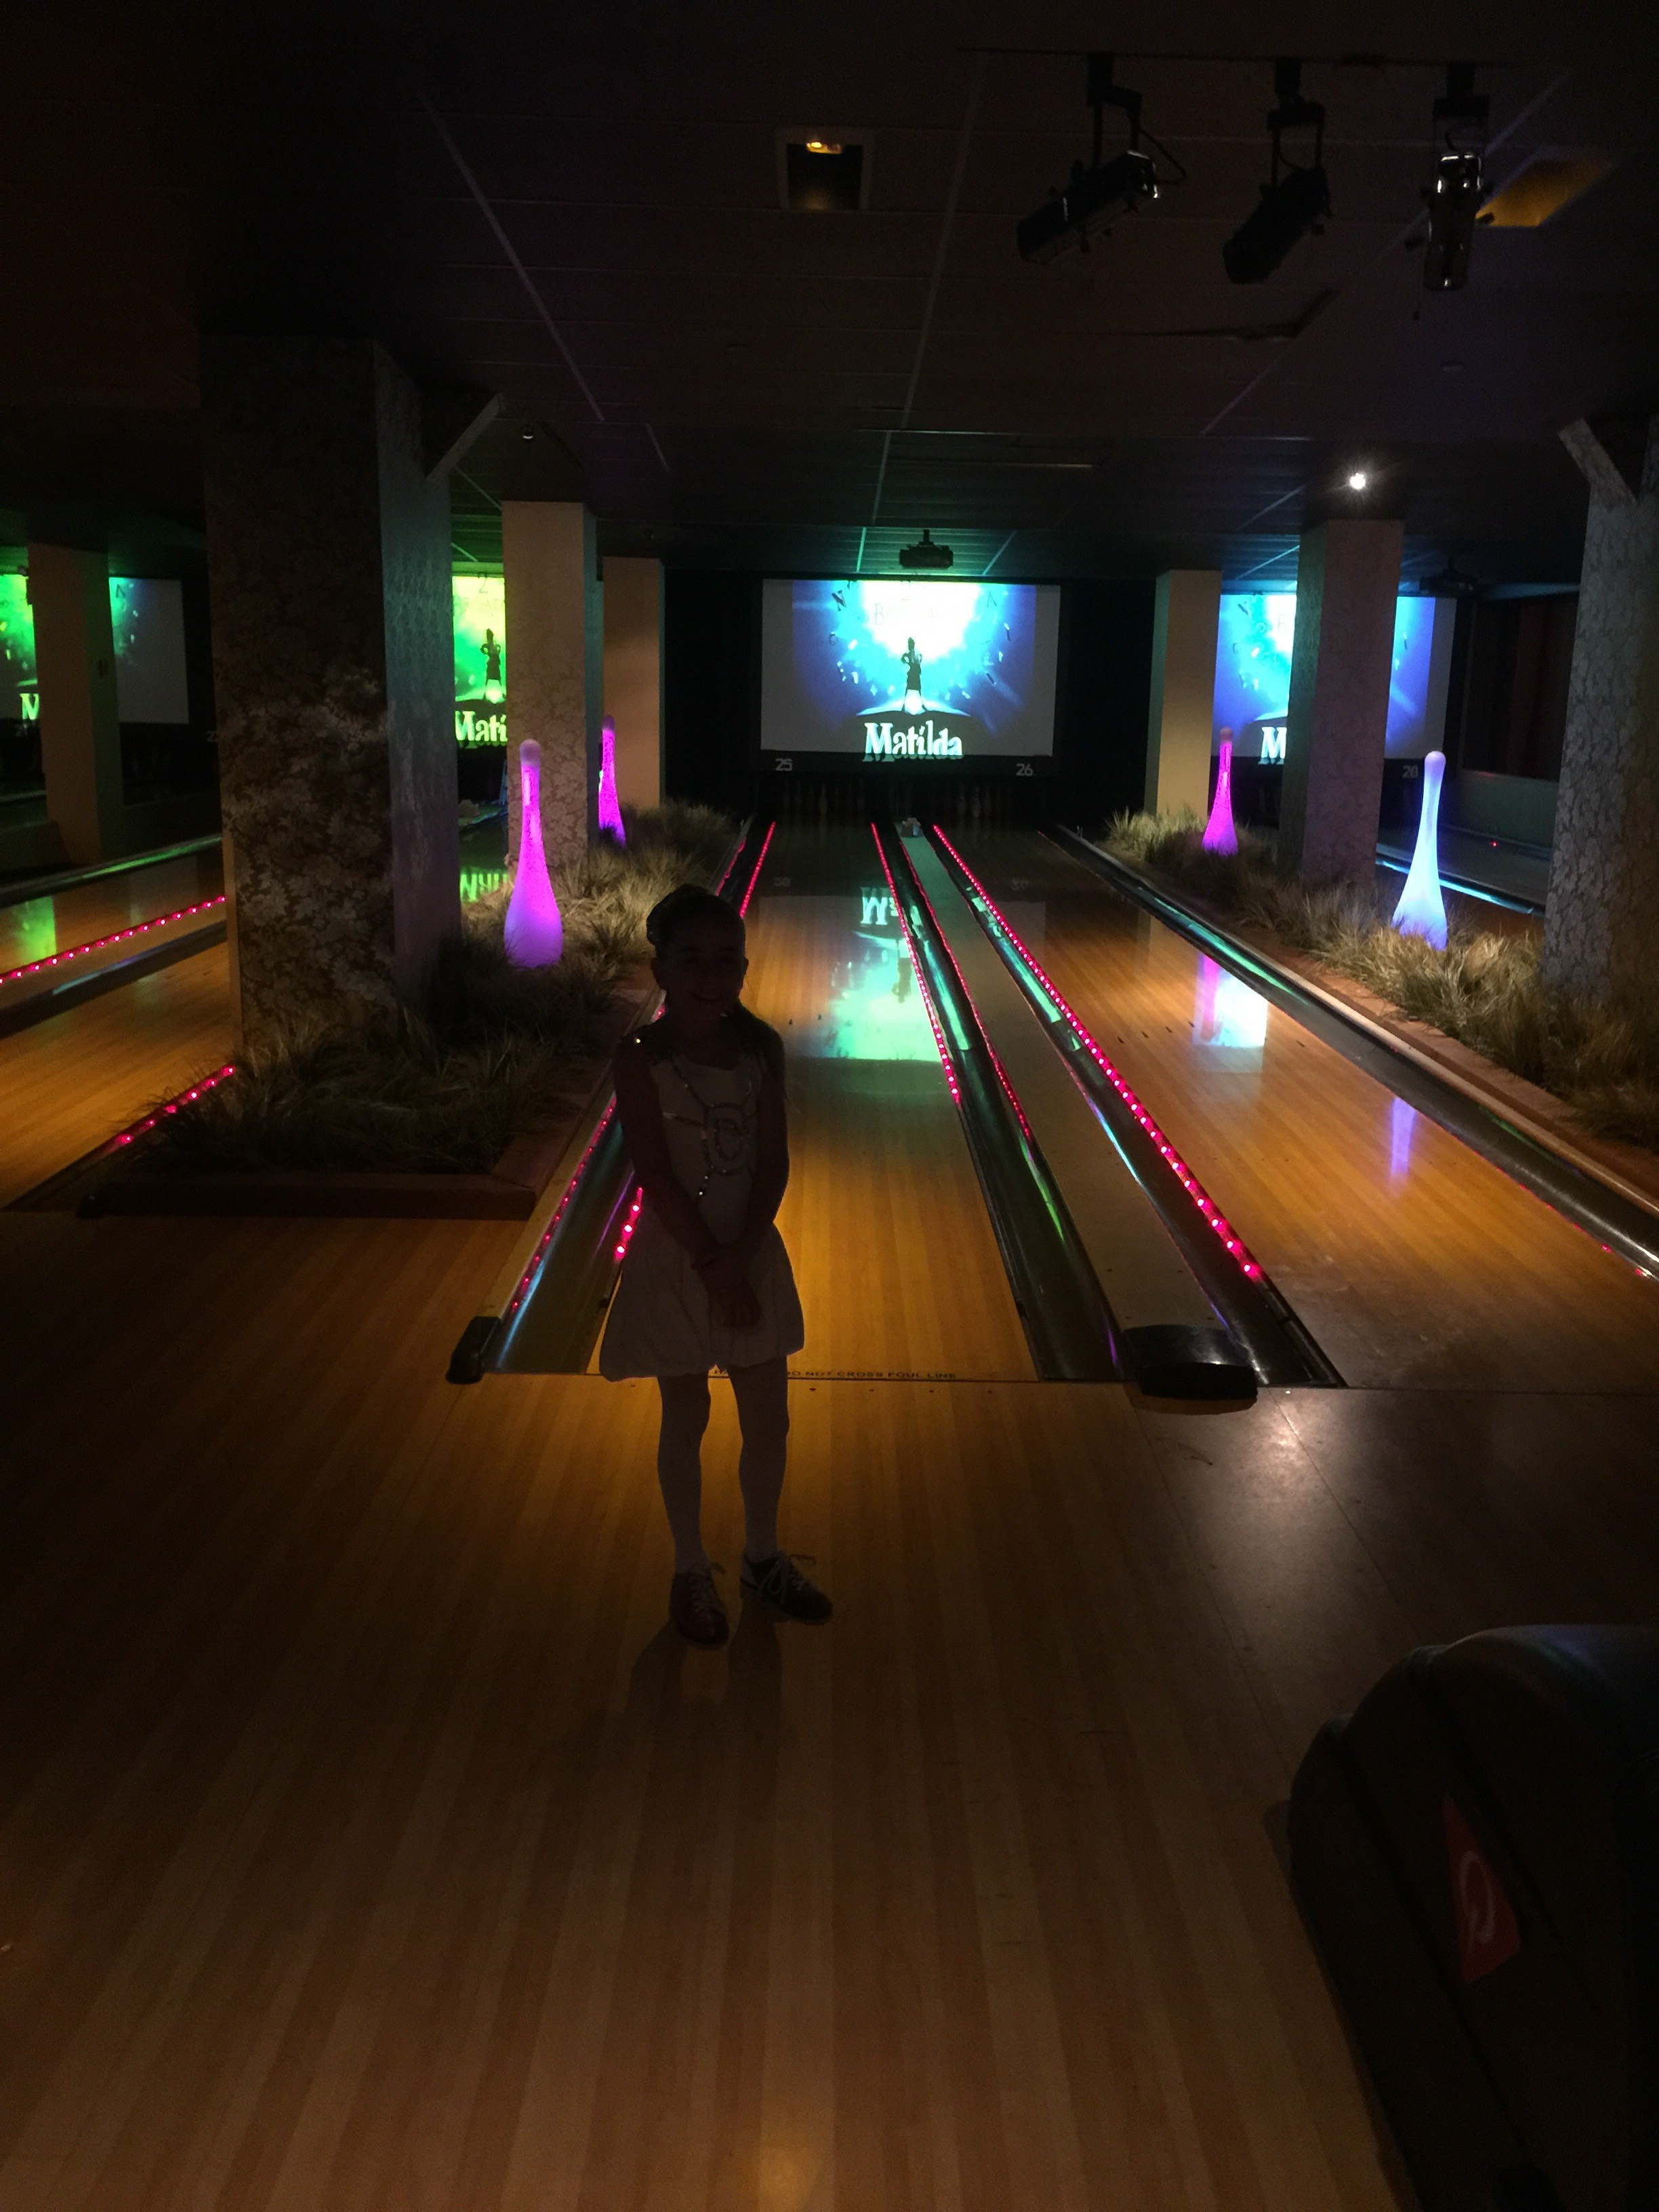 GiaNina in front of lanes at Matilda party.jpg